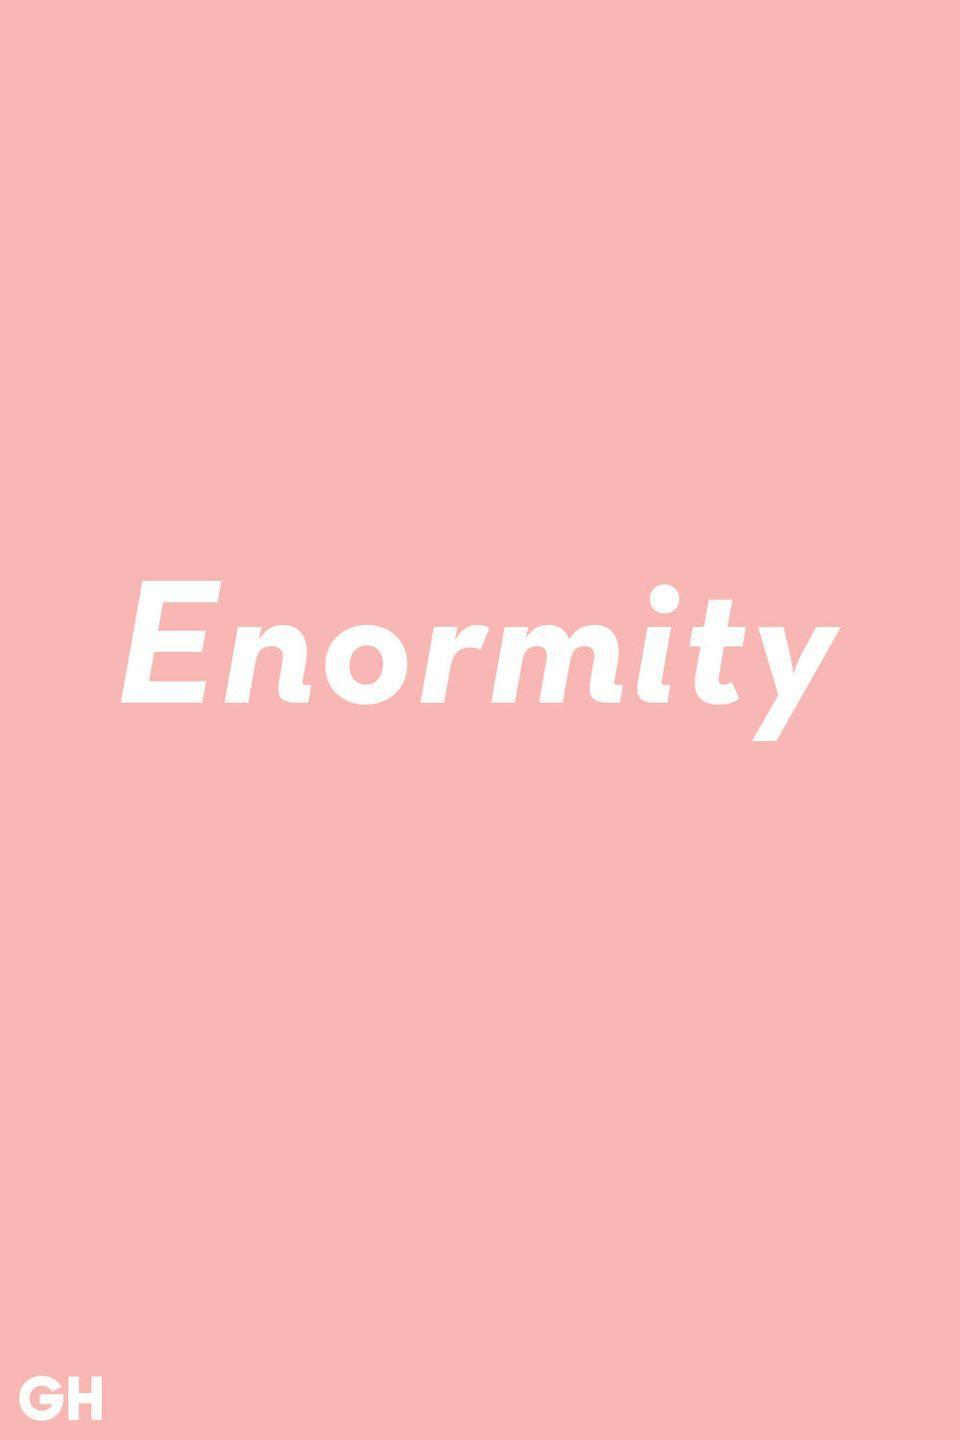 <p>Enormity doesn't mean huge or enormous. It means extremely evil.</p>